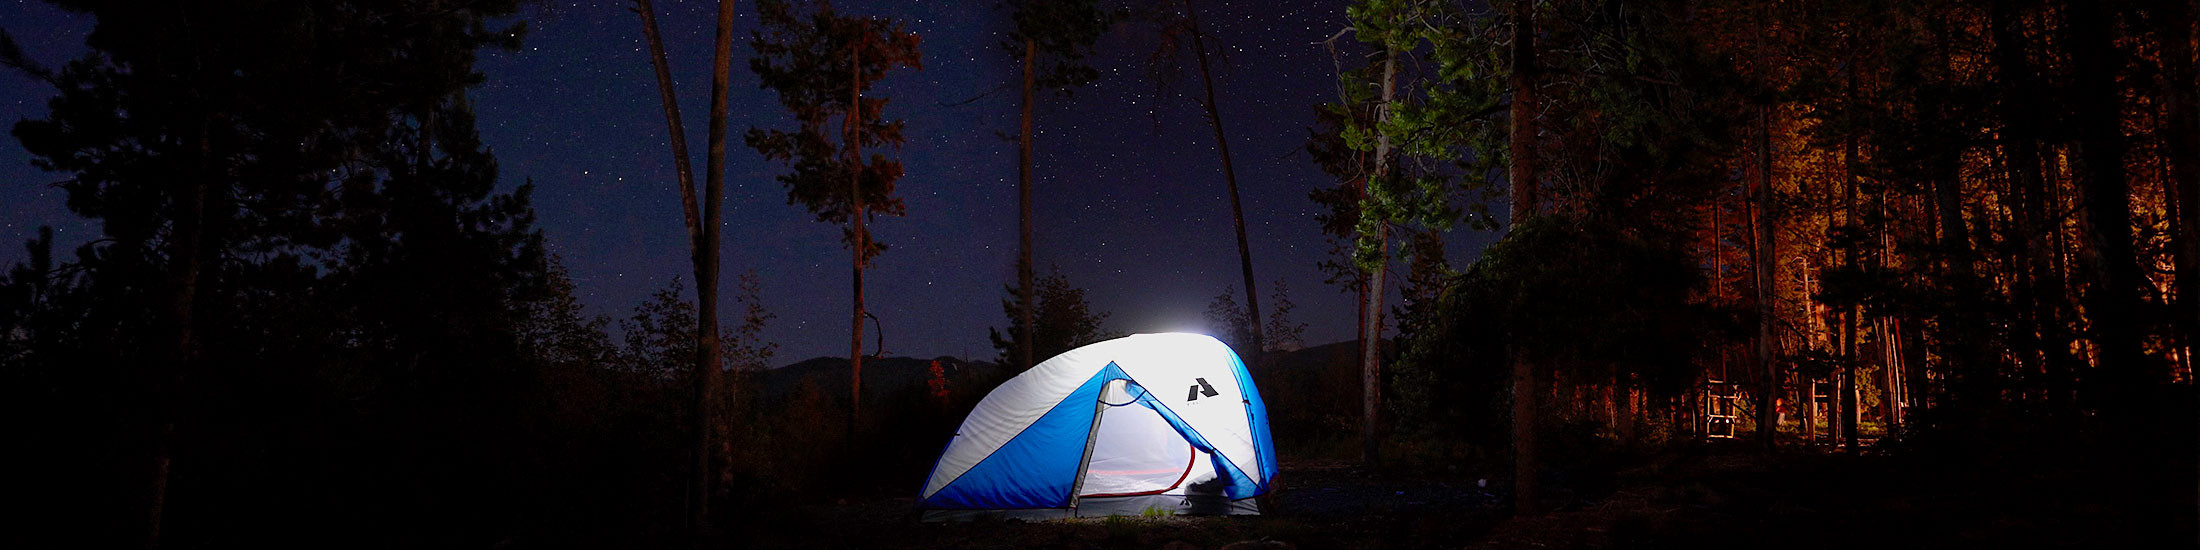 An illuminated Stargazer 2 Person Tent in the woods